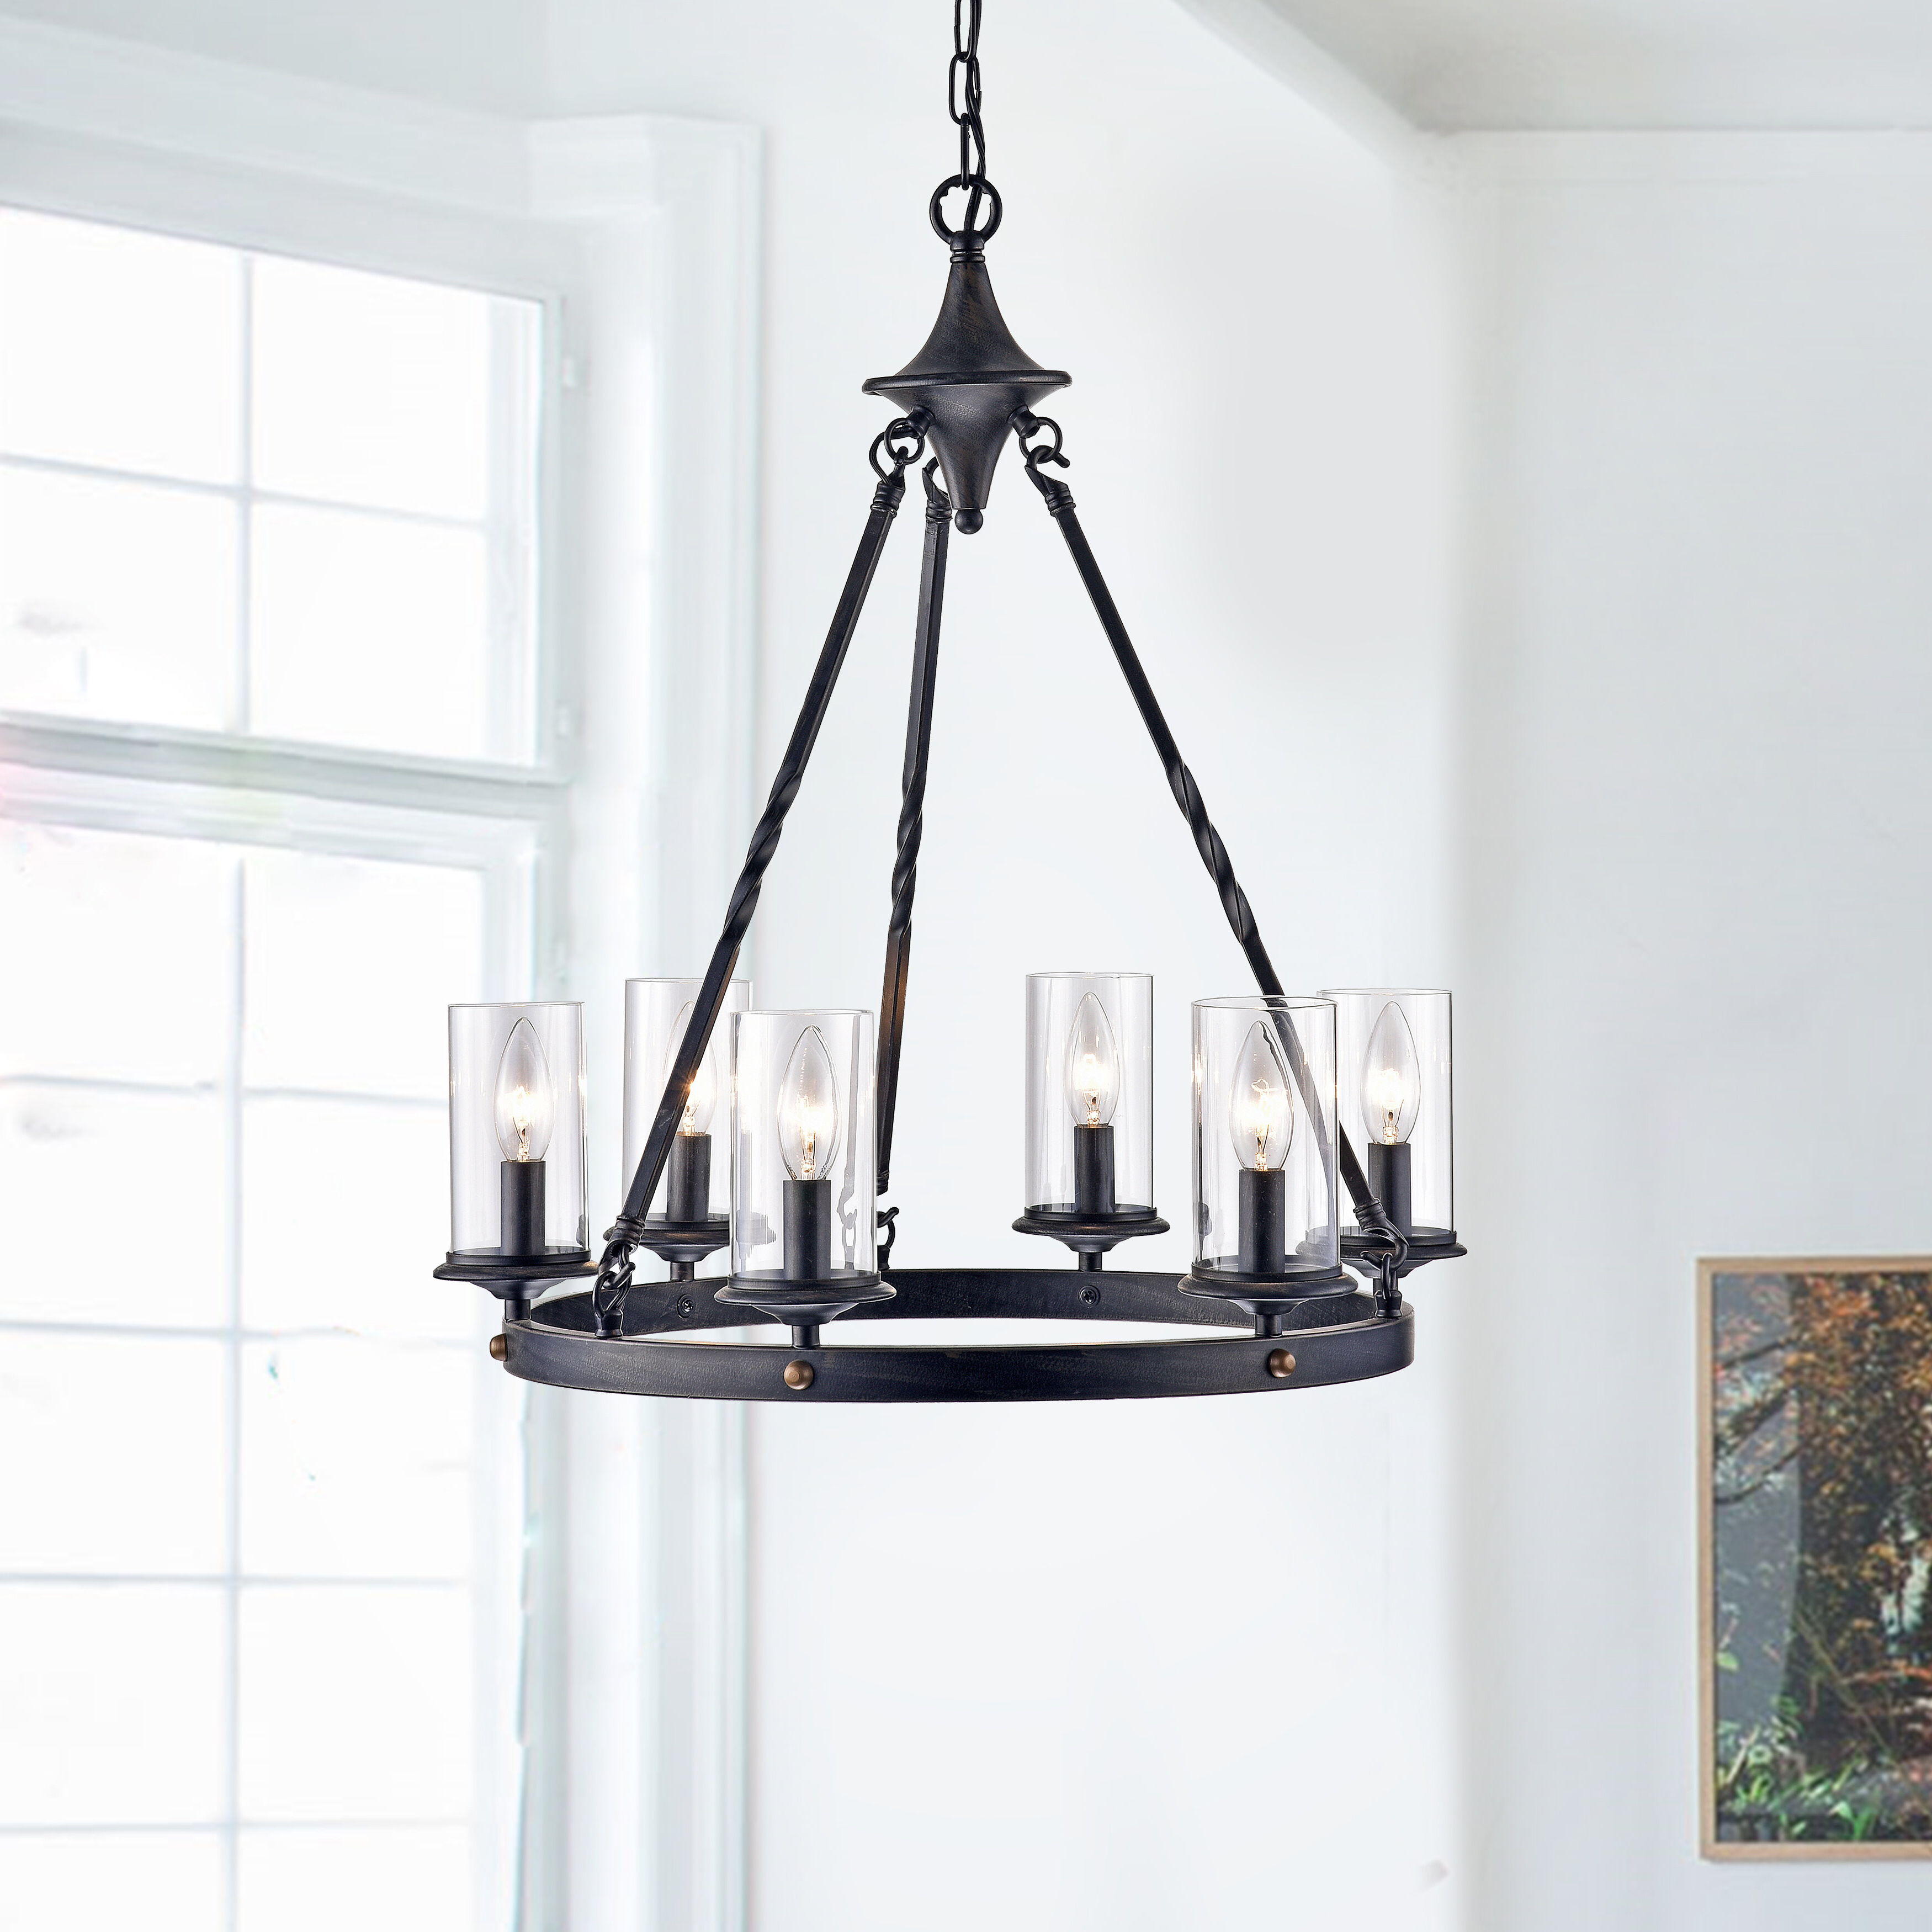 Suki 5 Light Shaded Chandeliers For Famous Farmhouse & Rustic Andover Mills Chandeliers (View 15 of 20)